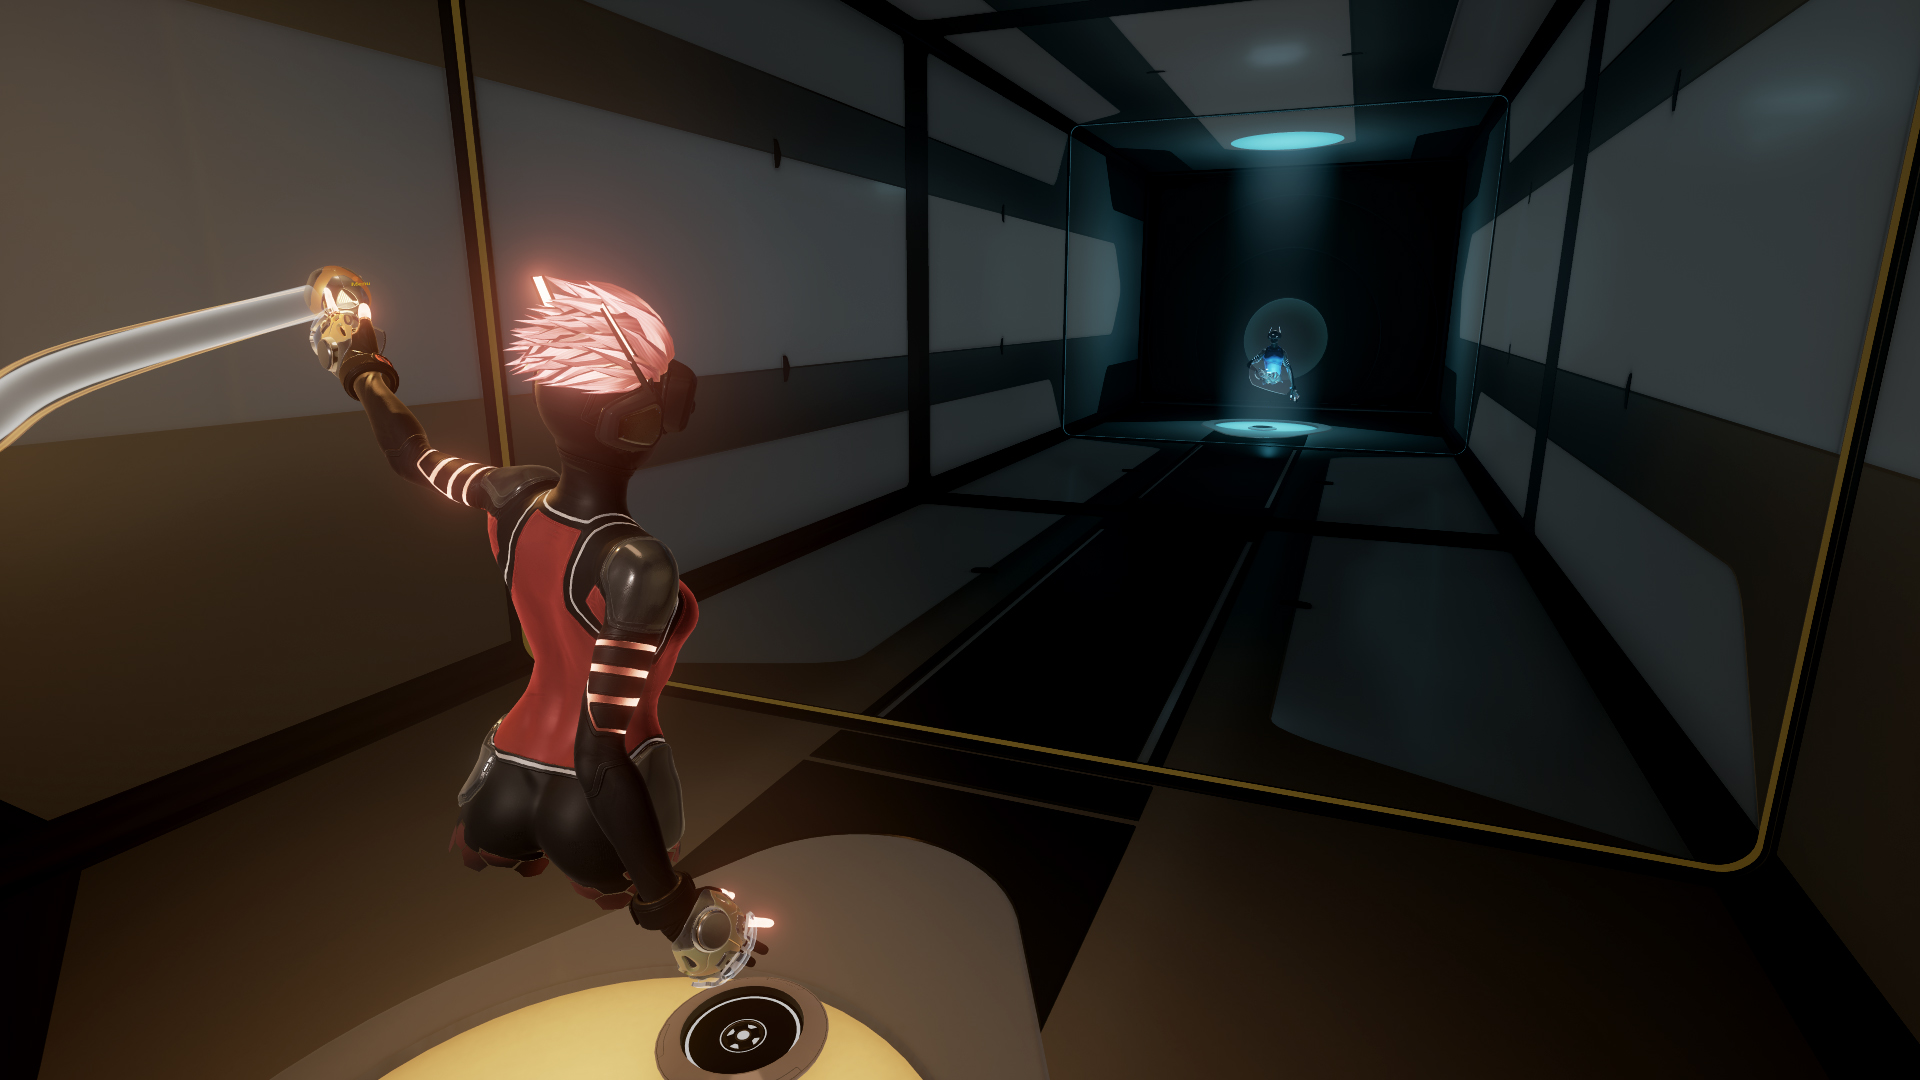 Vr Only Sports Game Sparc Announced For Psvr Vive Rift By